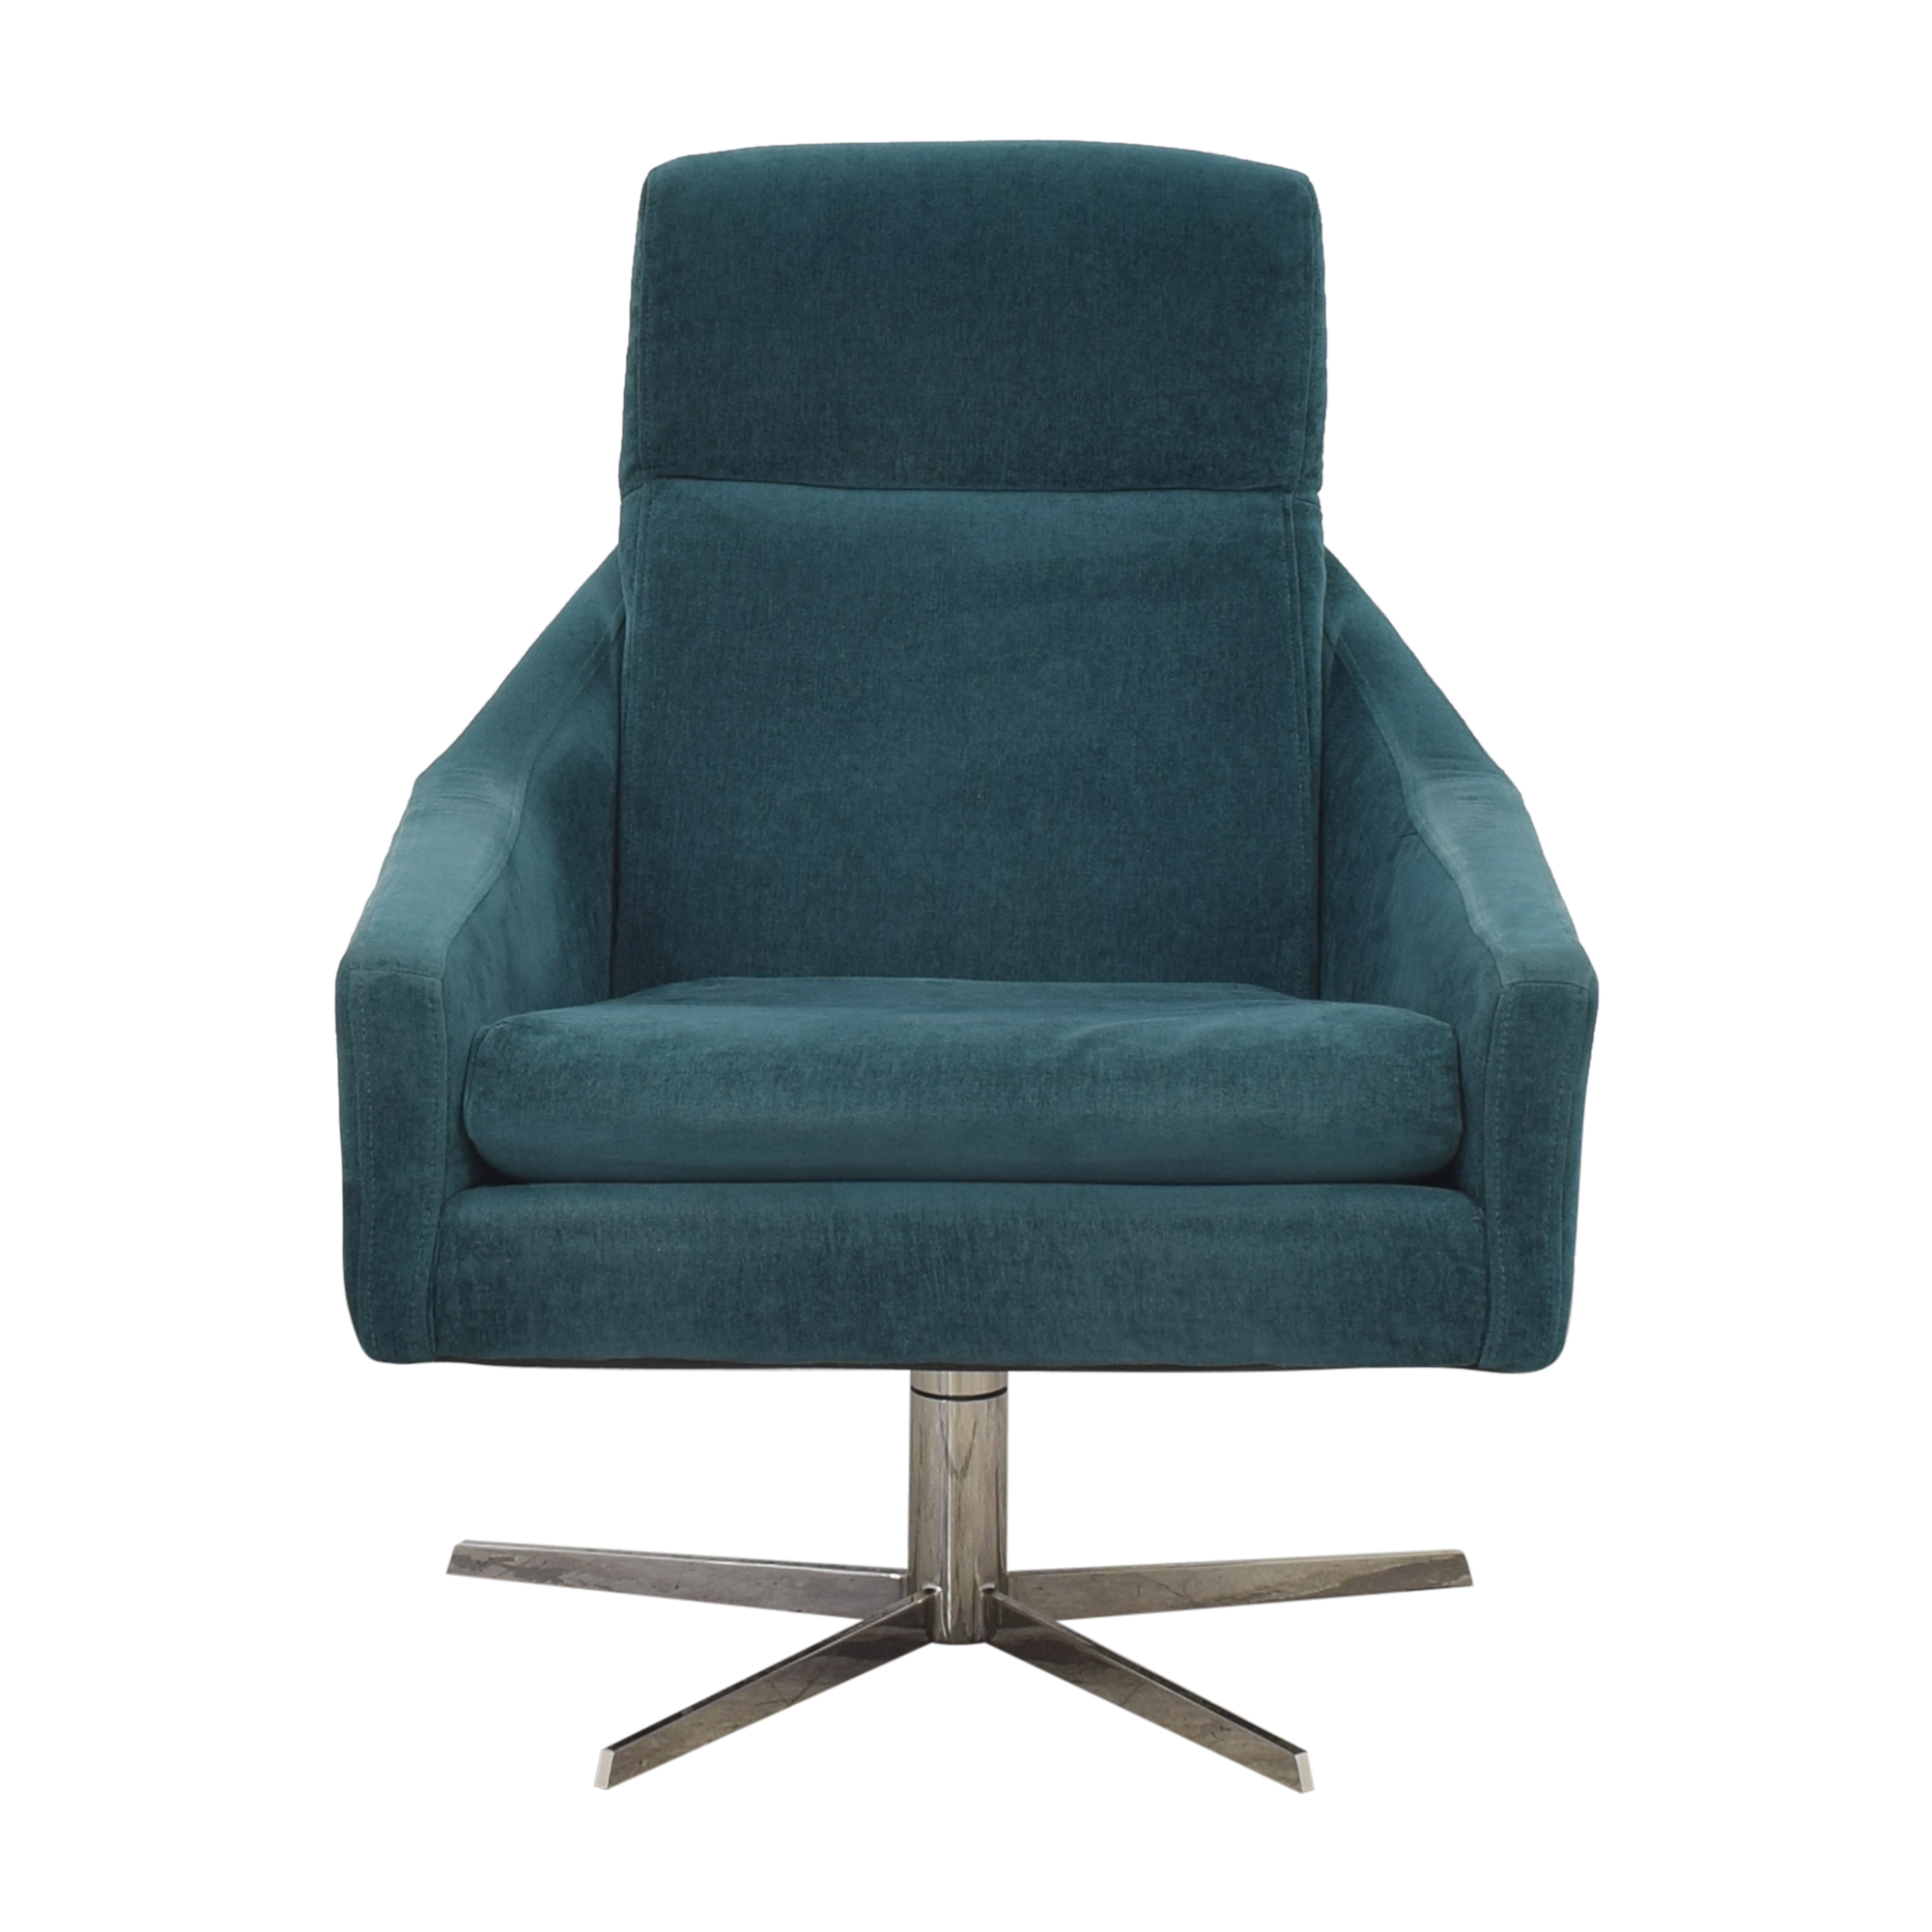 West Elm West Elm Austin Swivel Arm Chair Accent Chairs